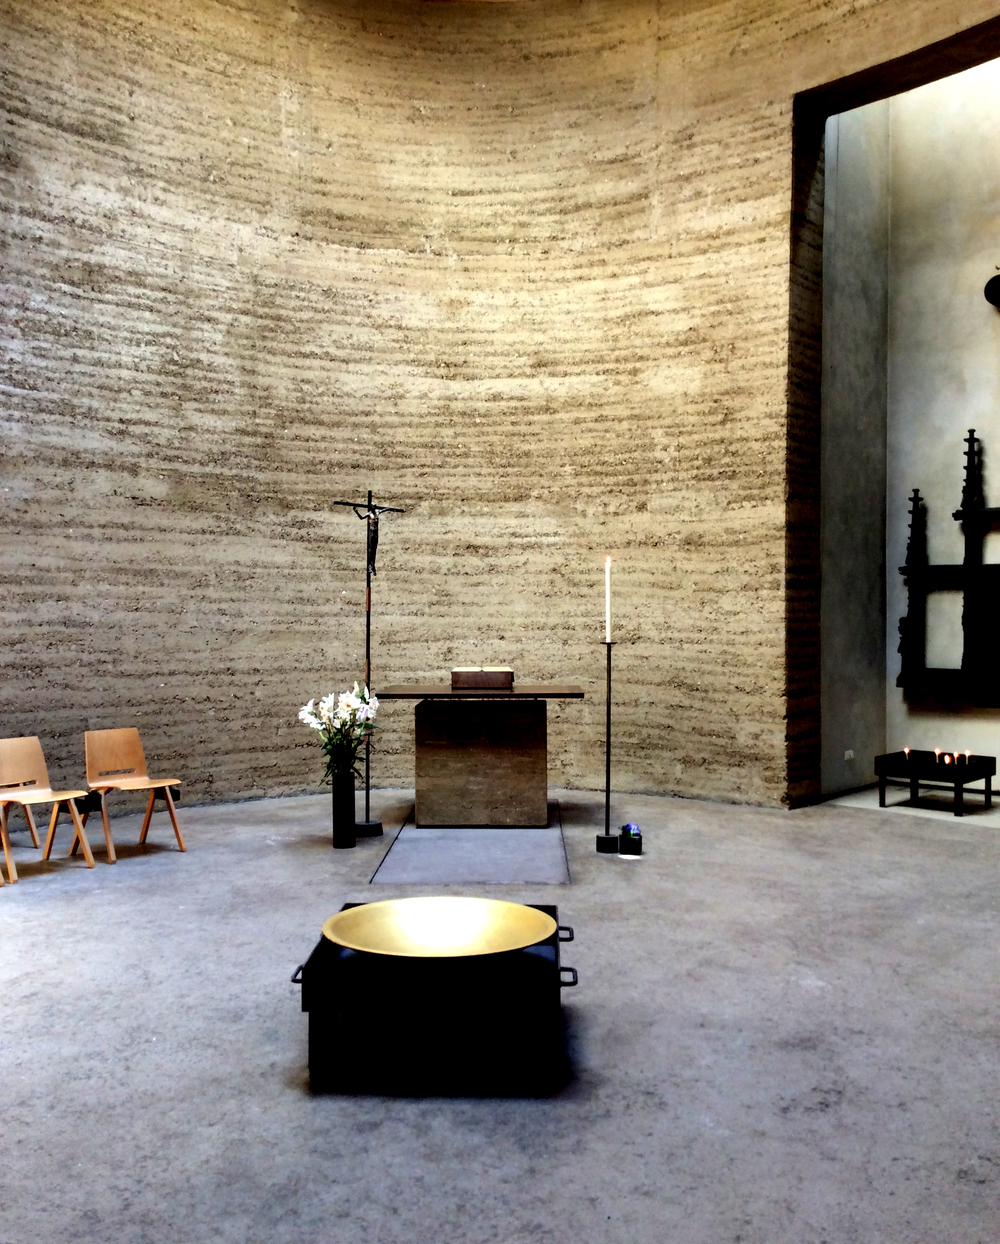 Interior of the Chapel of Reconciliation on Bernauer Strasse.